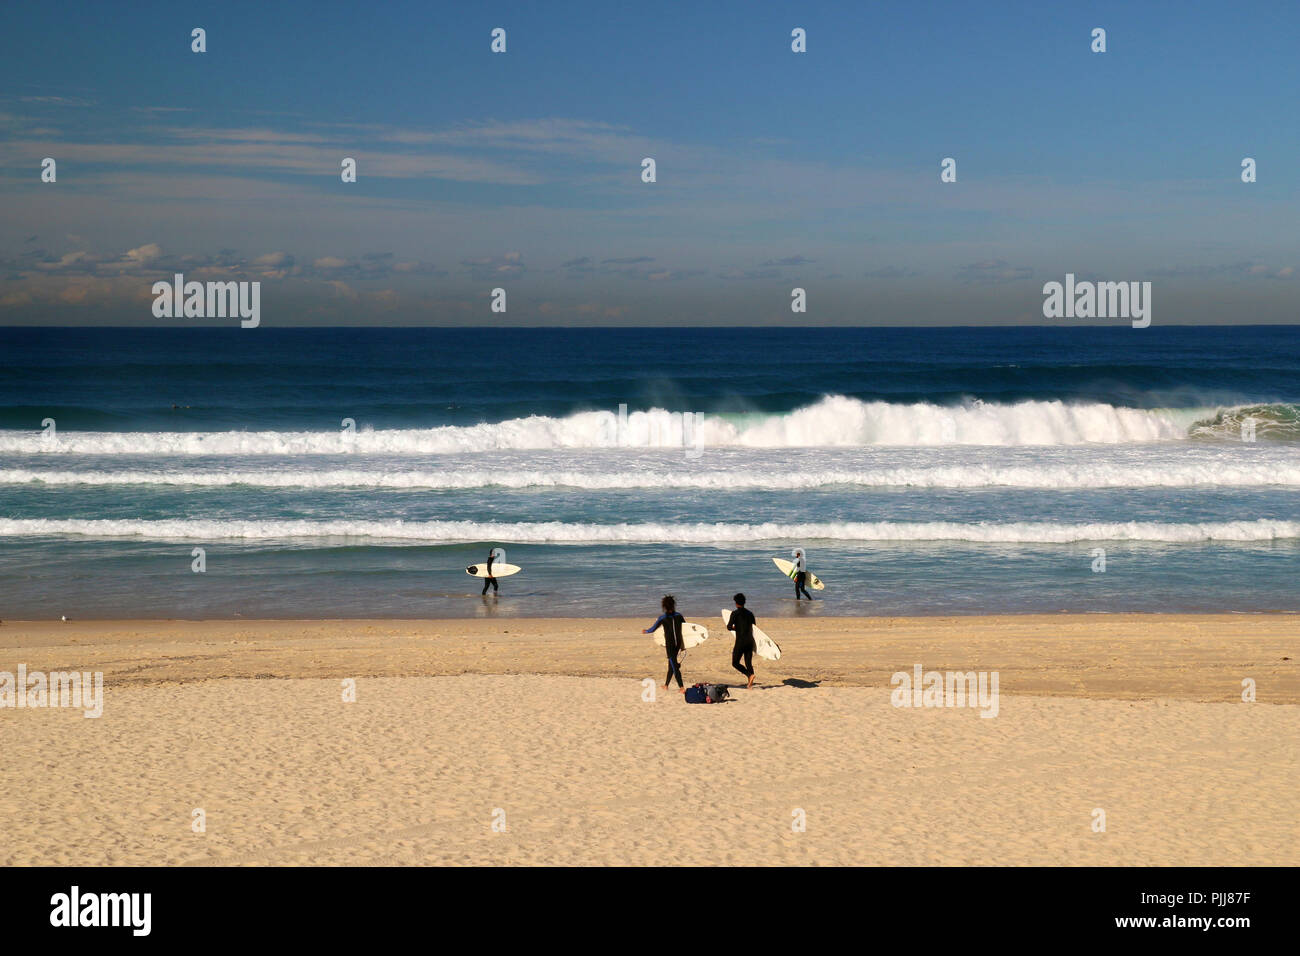 Deep blue Pacific ocean beach scene with huge waves and surfers walking on the beach and surfing, Bondi beach in Sydney, Australia - Stock Image